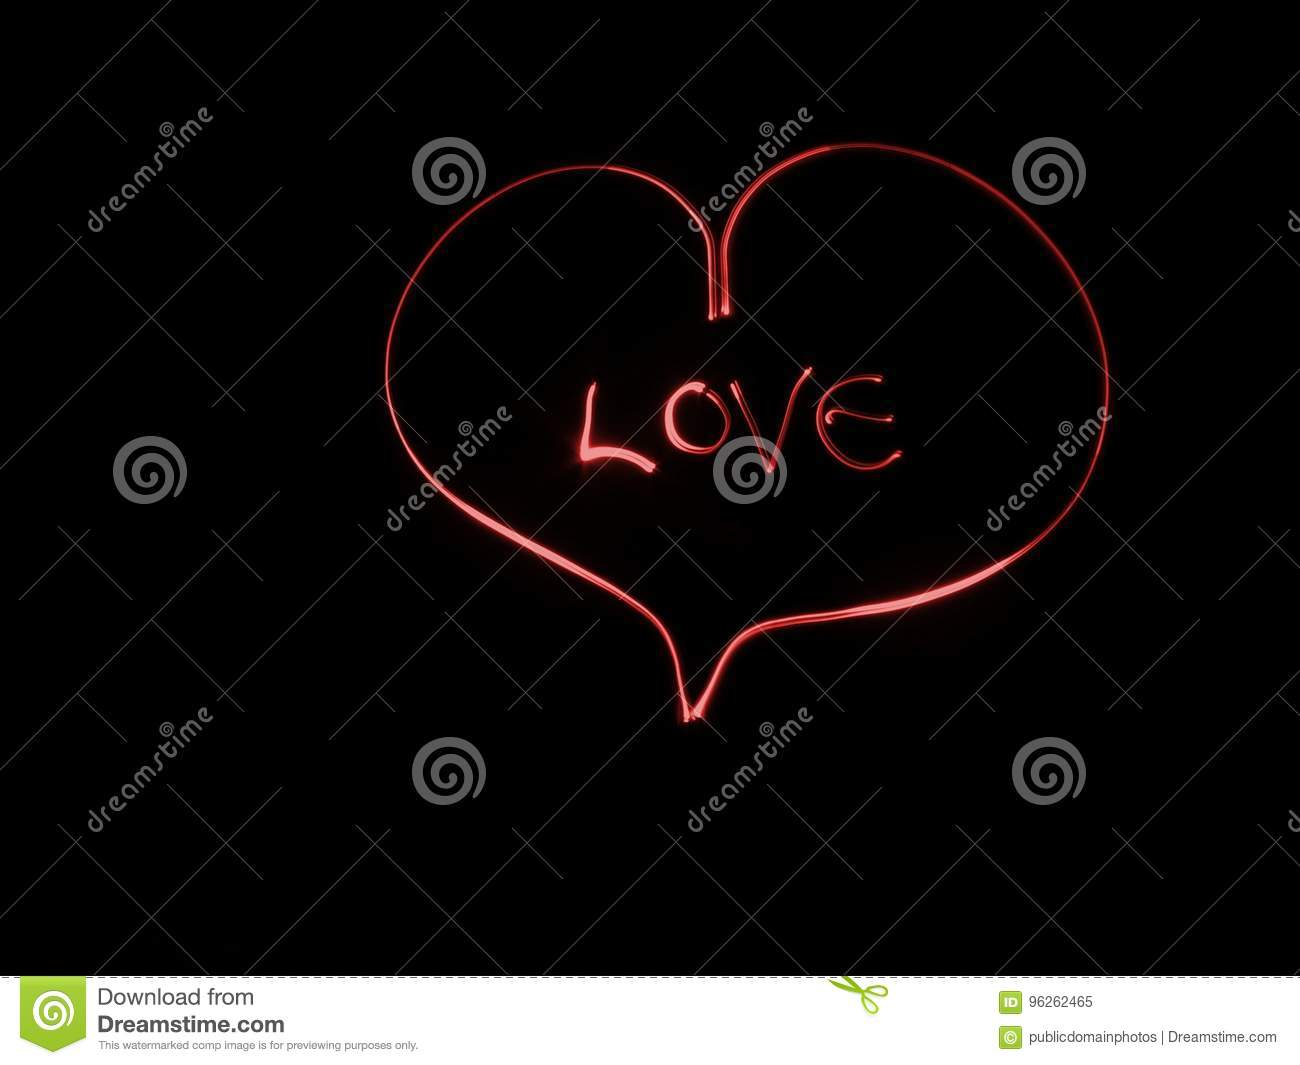 Text Love Font Computer Wallpaper Picture Image 96262465